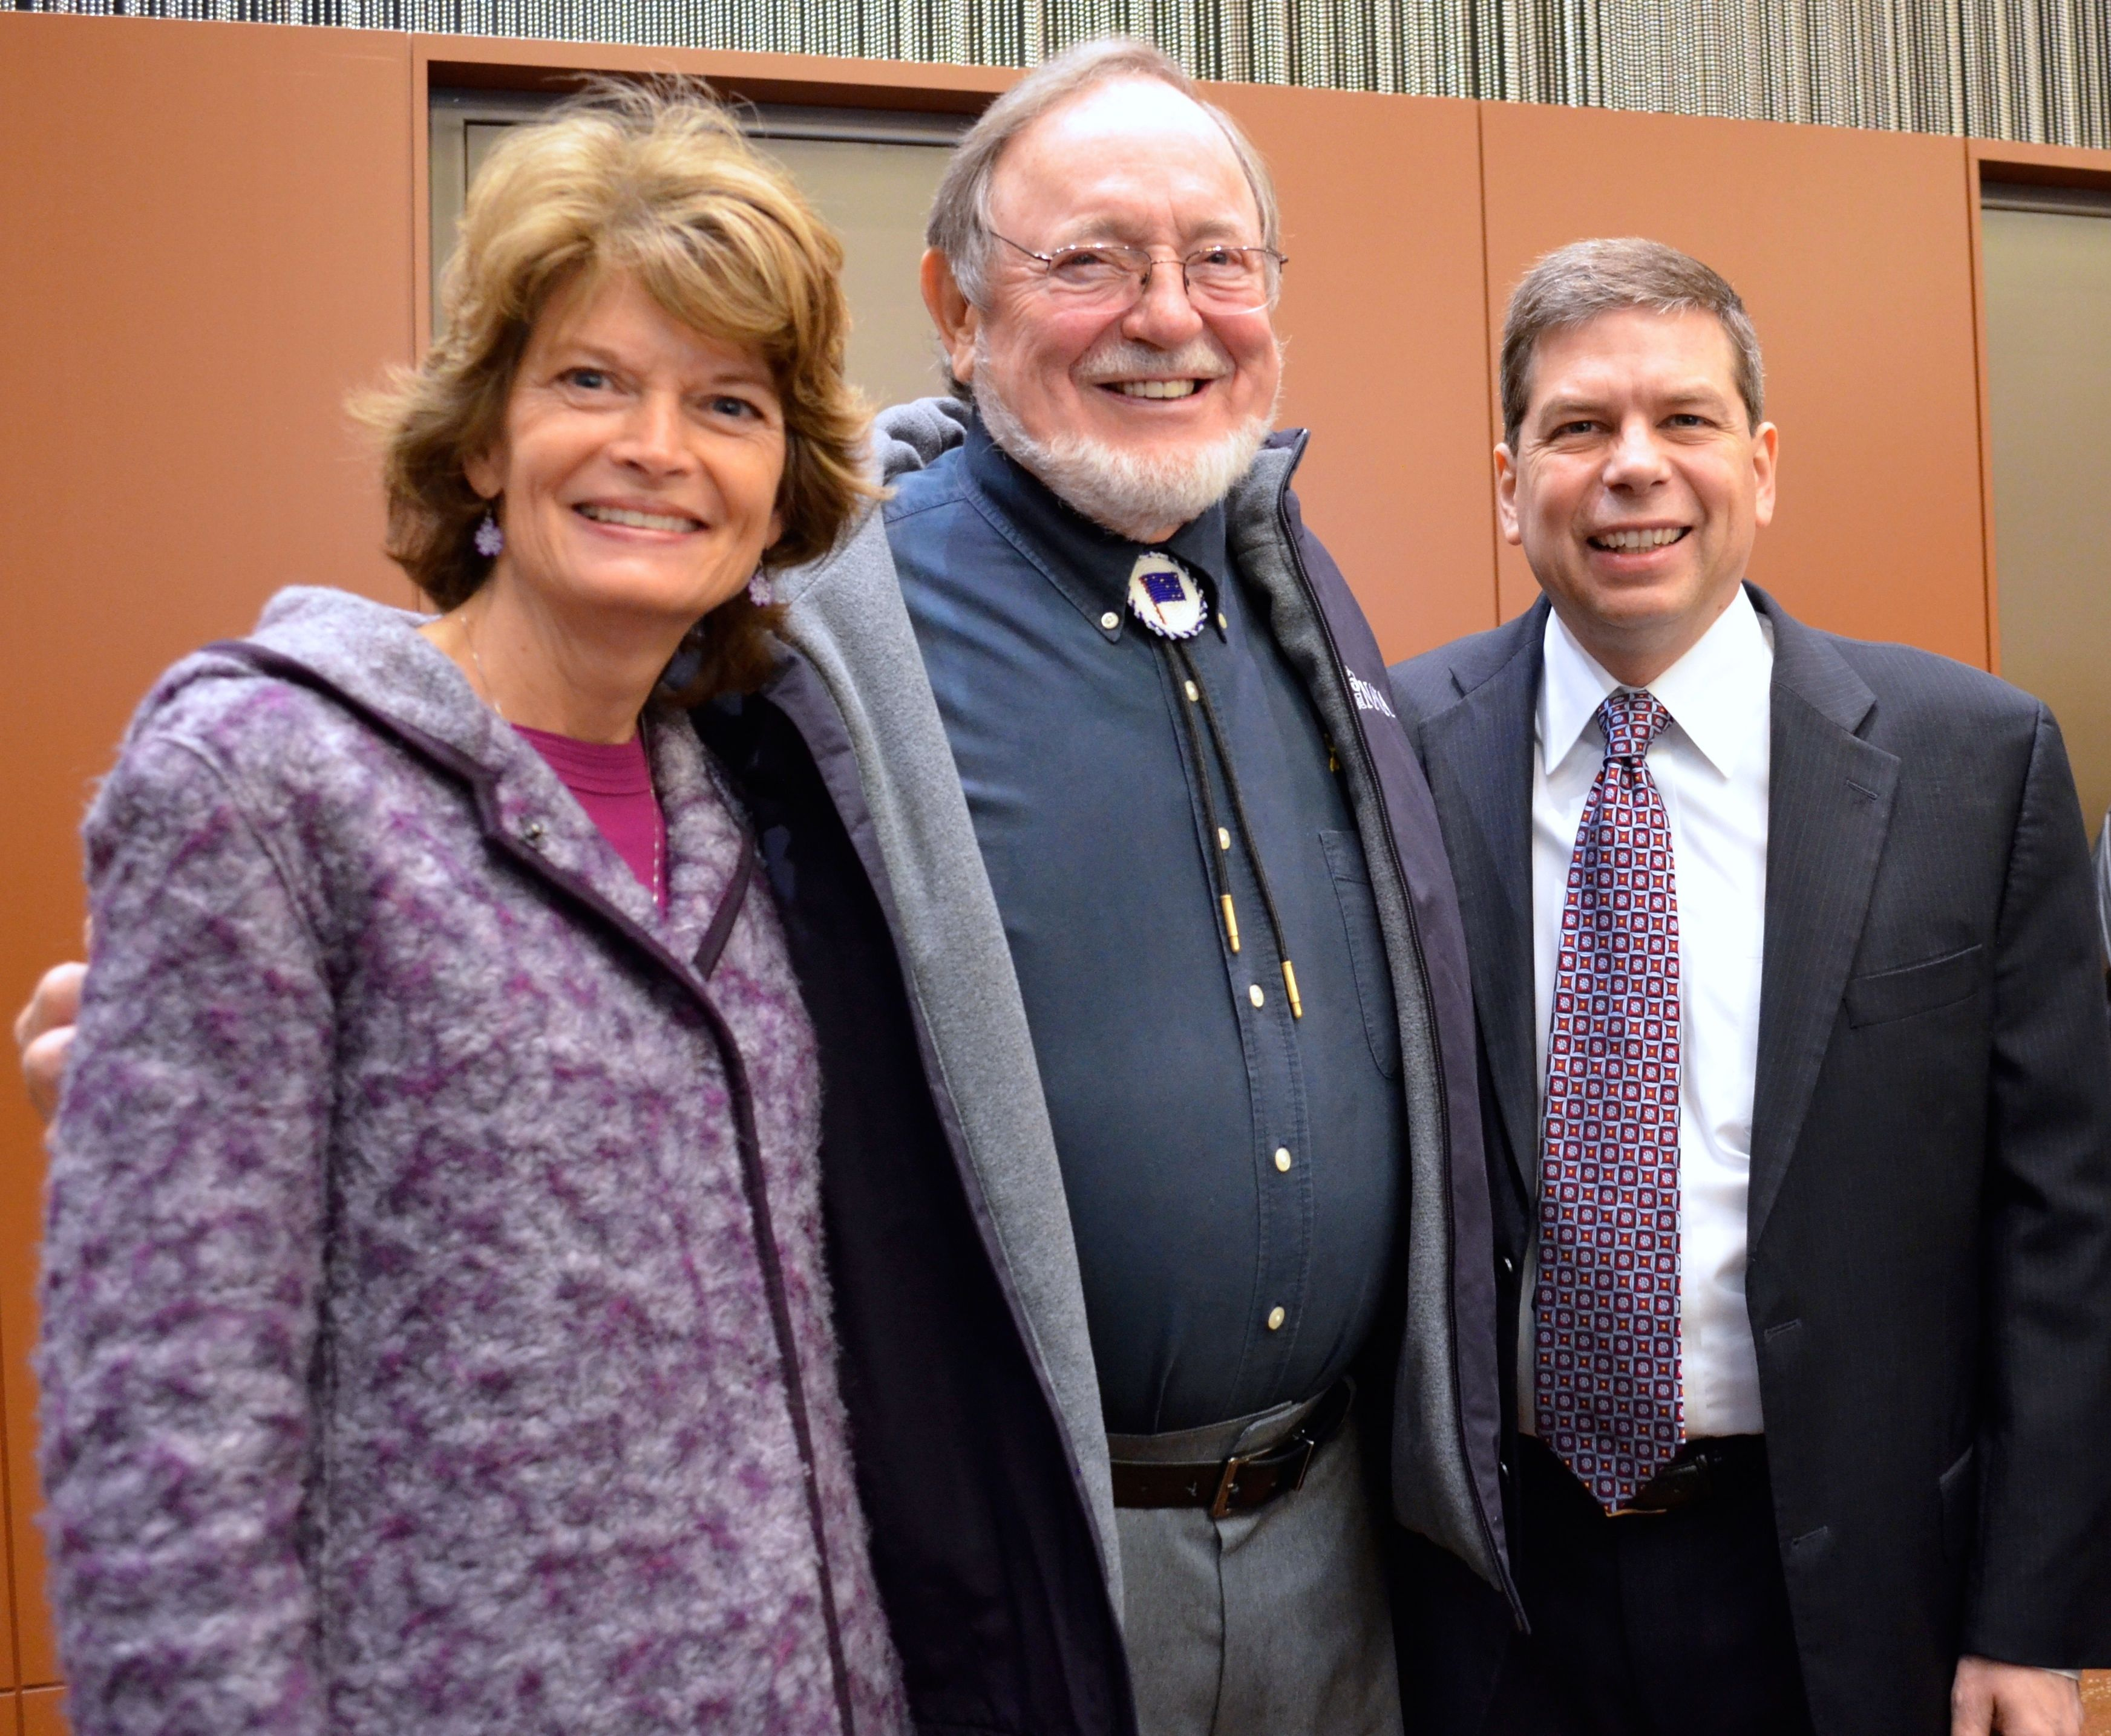 Sen. Lisa Murkowski, Rep. Don Young and Sen. Mark Begich pose for a picture at the 2014 Elders and Youth Conference. (Photo by Jennifer Canfield/KTOO)